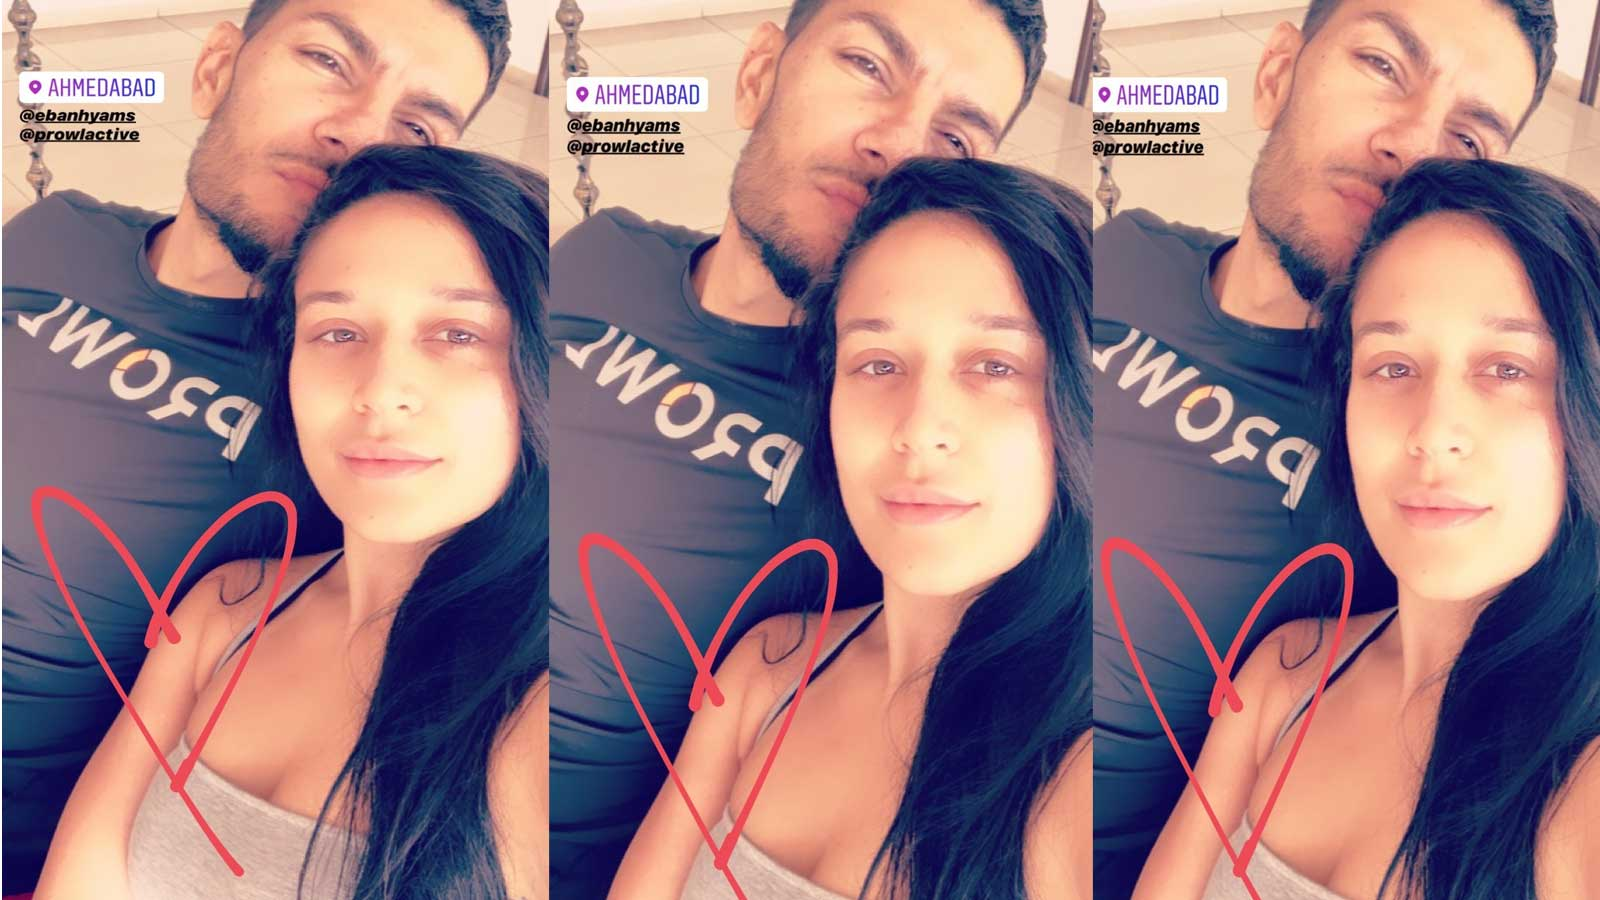 krishna-shroff-is-all-hearts-for-beau-eban-hyams-in-this-beautiful-selfie